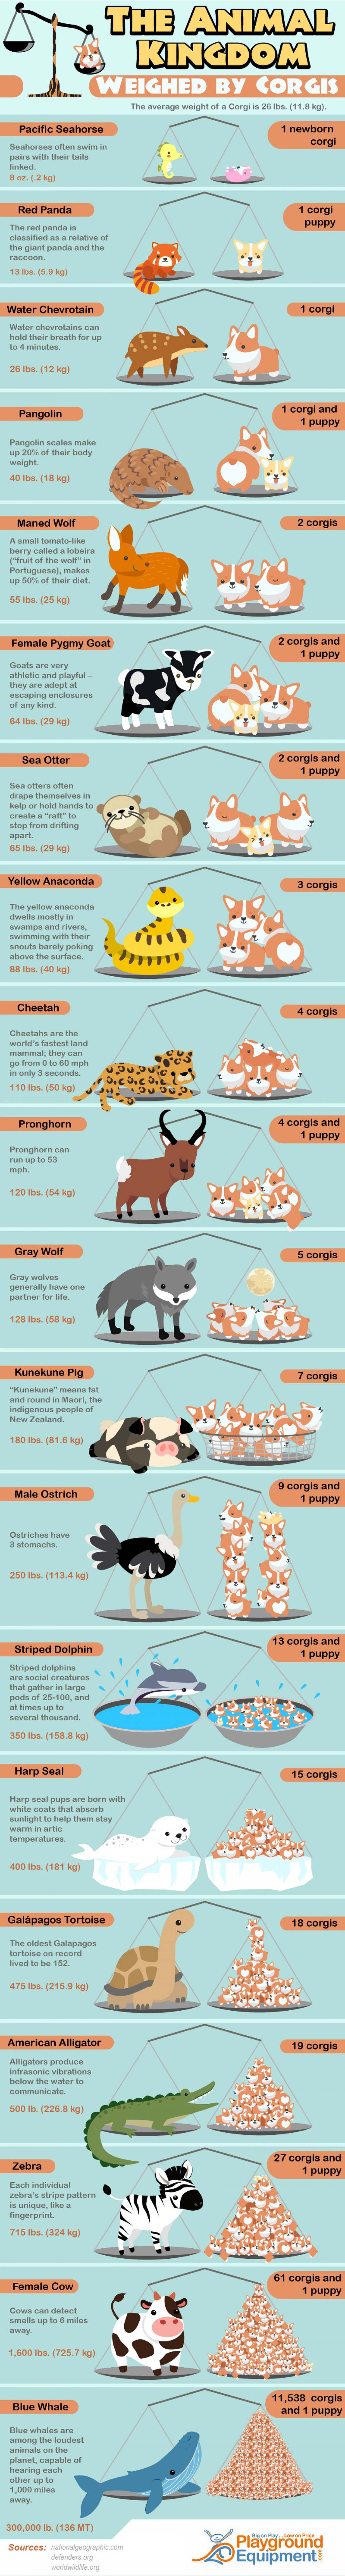 The Animal Kingdom Weighed by Corgis Infographic